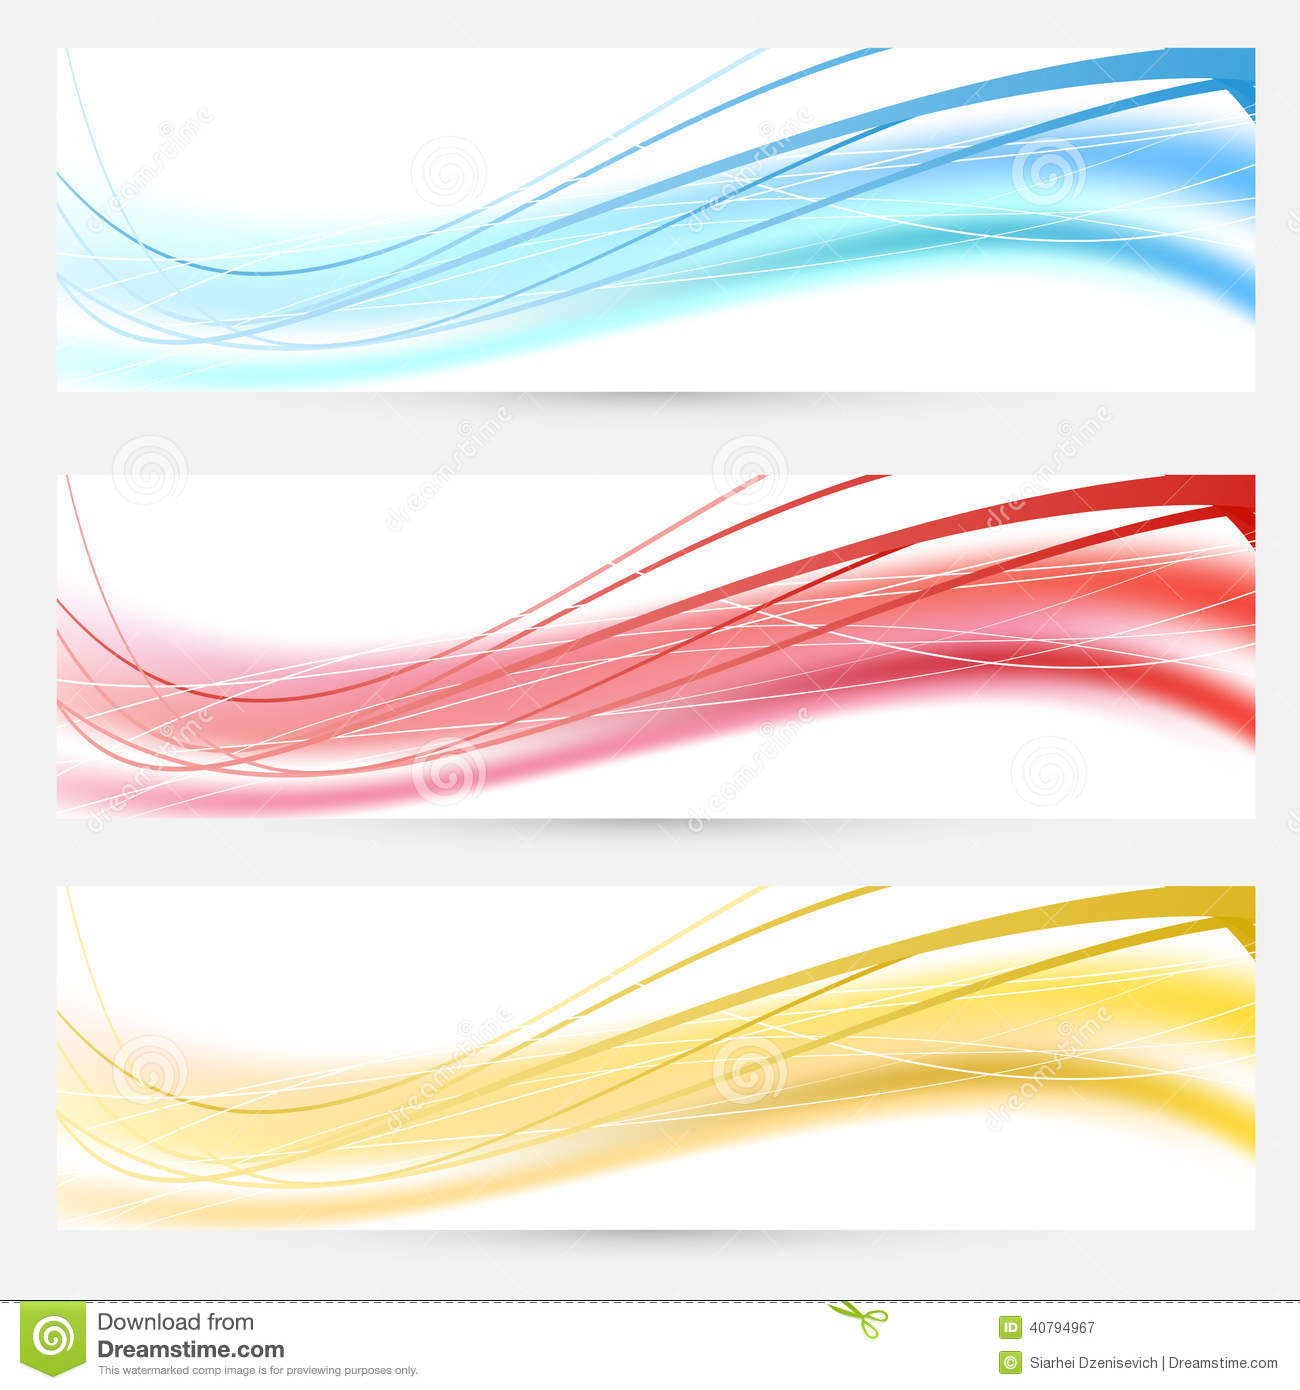 ... abstract wave lines cards headers and footers. Vector illustration